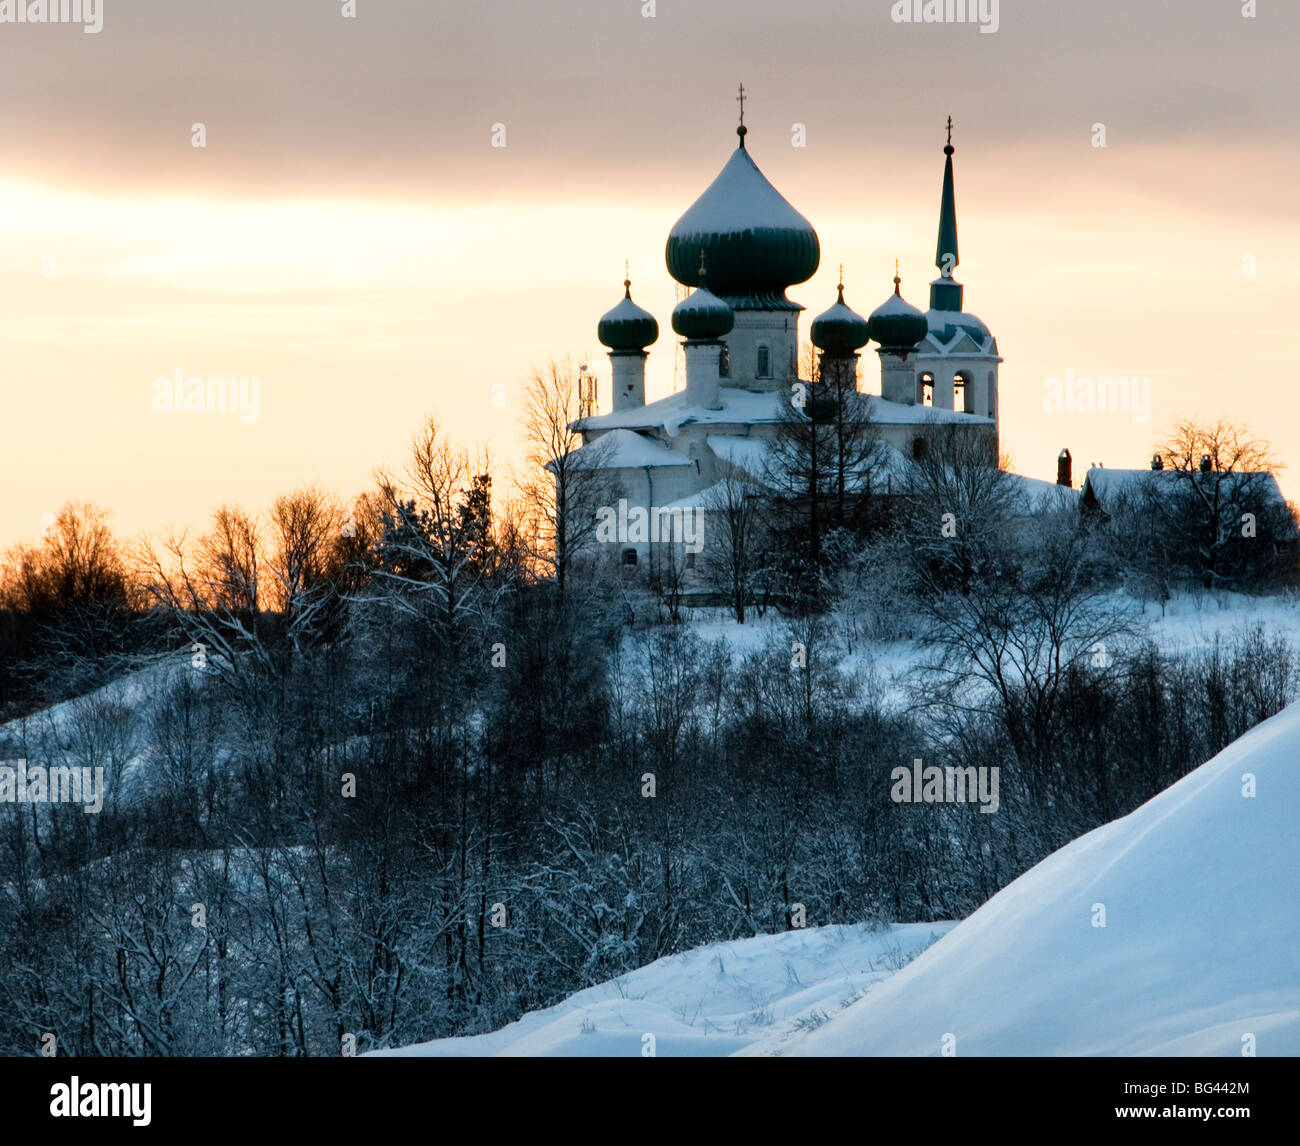 Church of Saint John the Baptist at dusk, Staraya Ladoga, Leningrad region, Russia - Stock Image